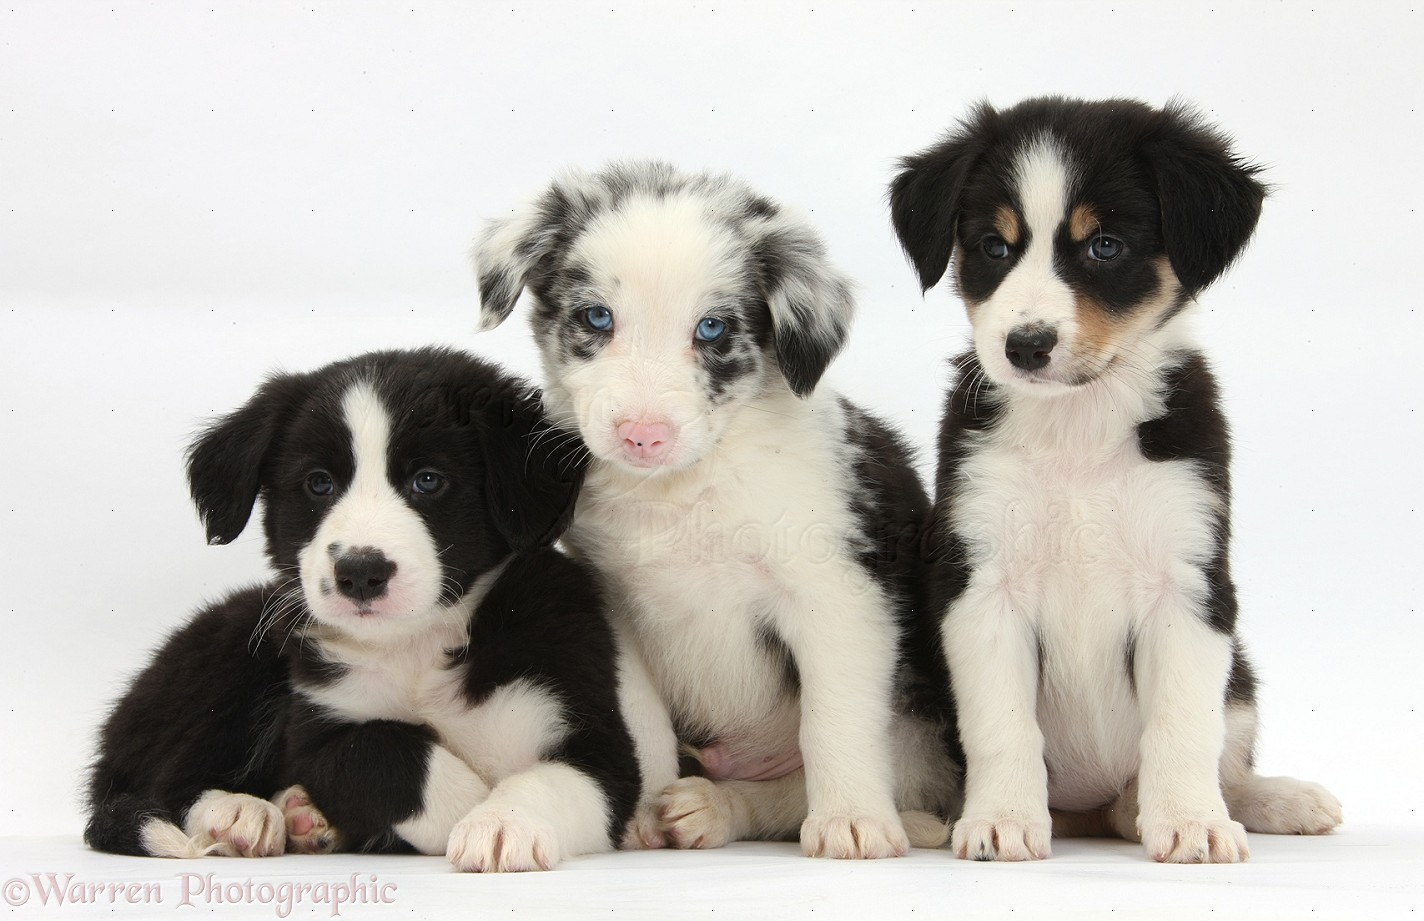 Dogs Border Collie Puppies 6 Weeks Old Photo Wp33833